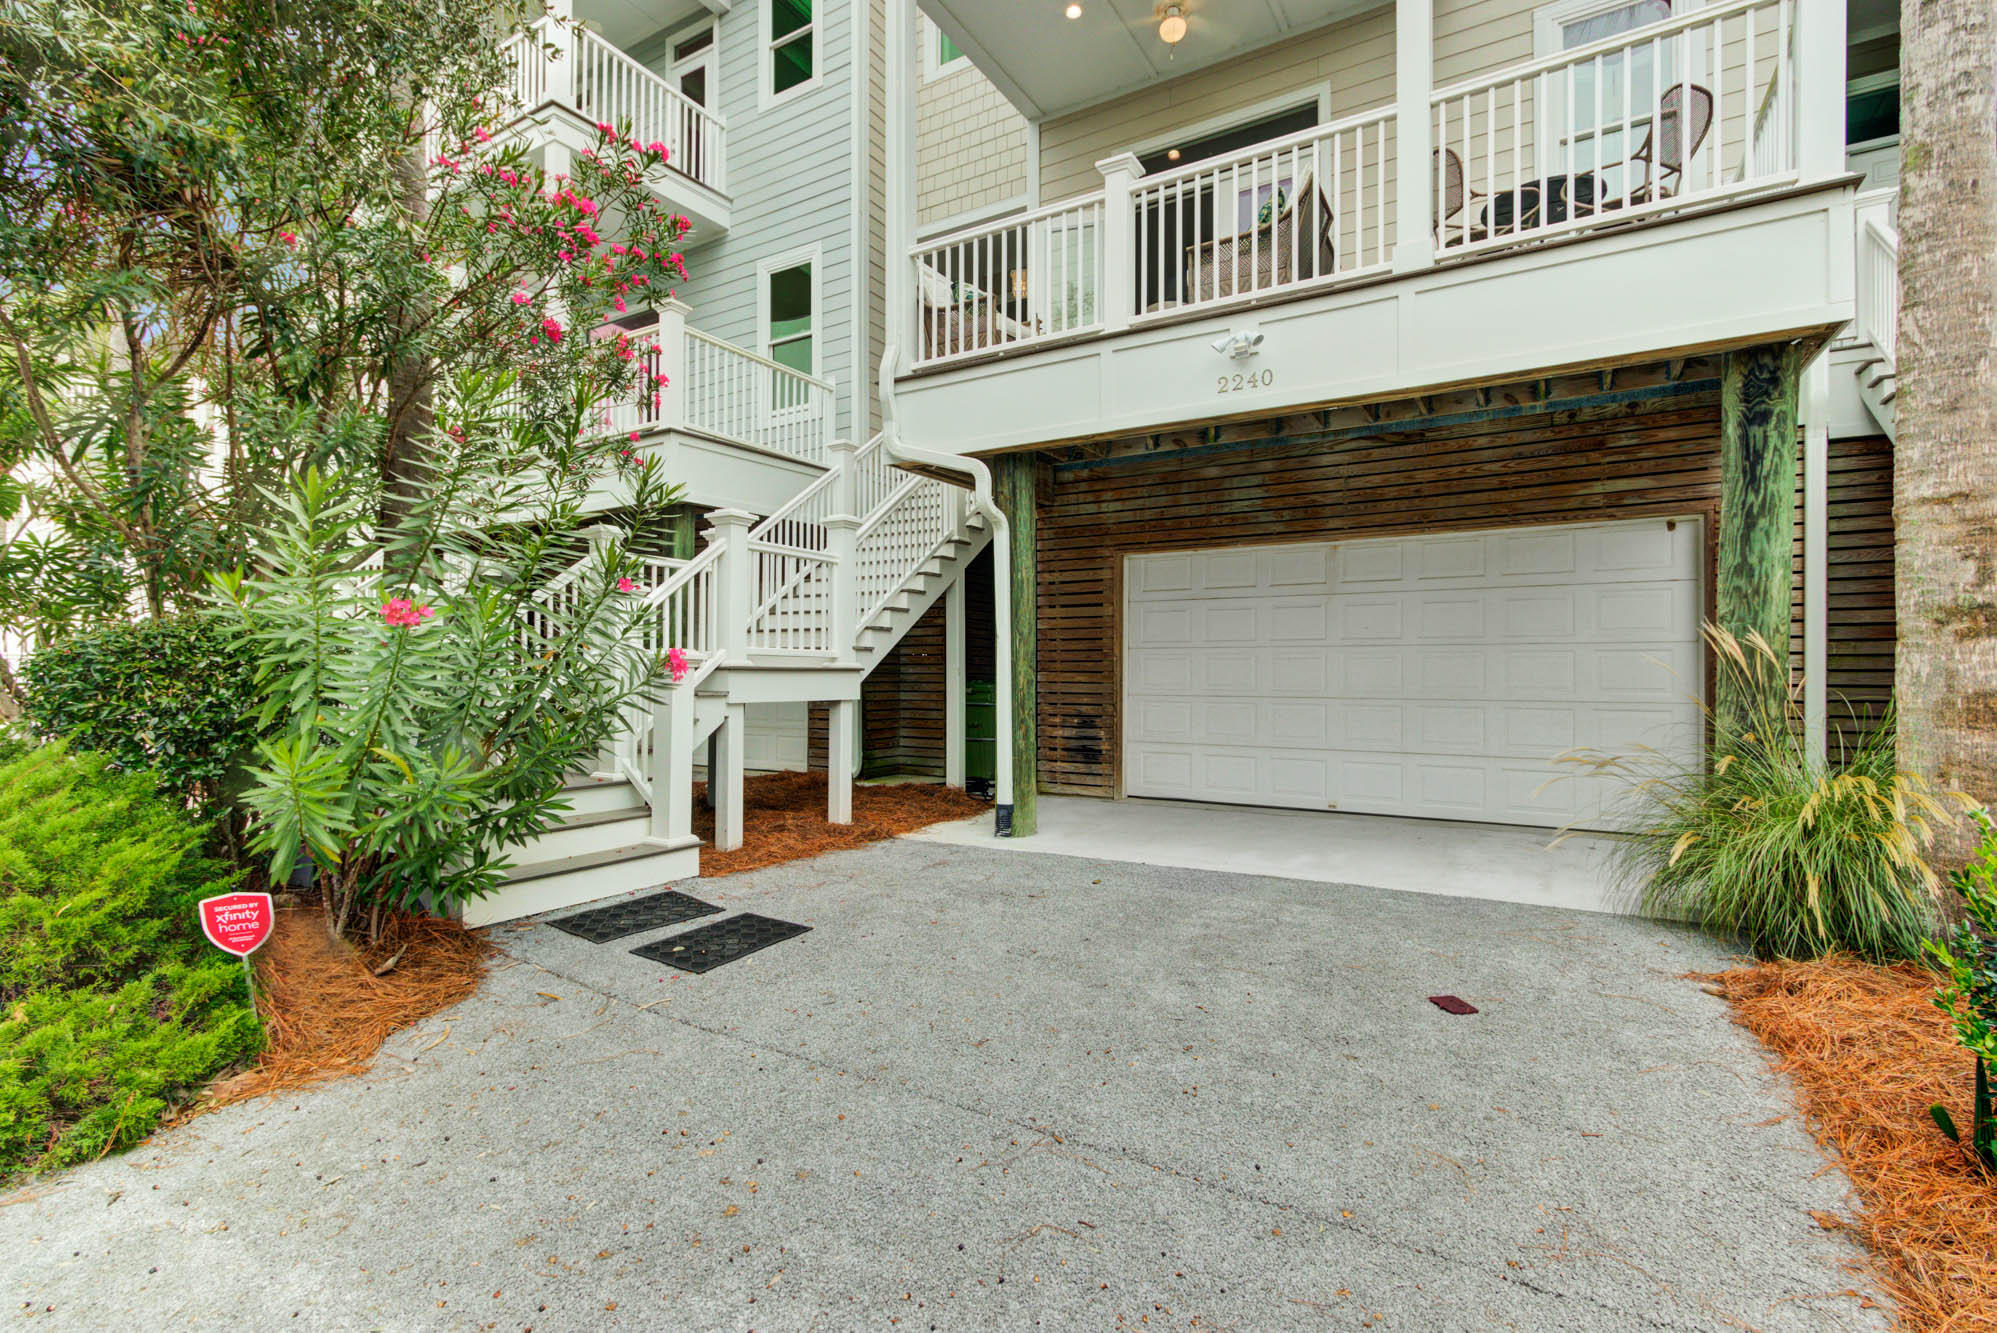 Folly Creek Place Homes For Sale - 2240 Folly, Folly Beach, SC - 40